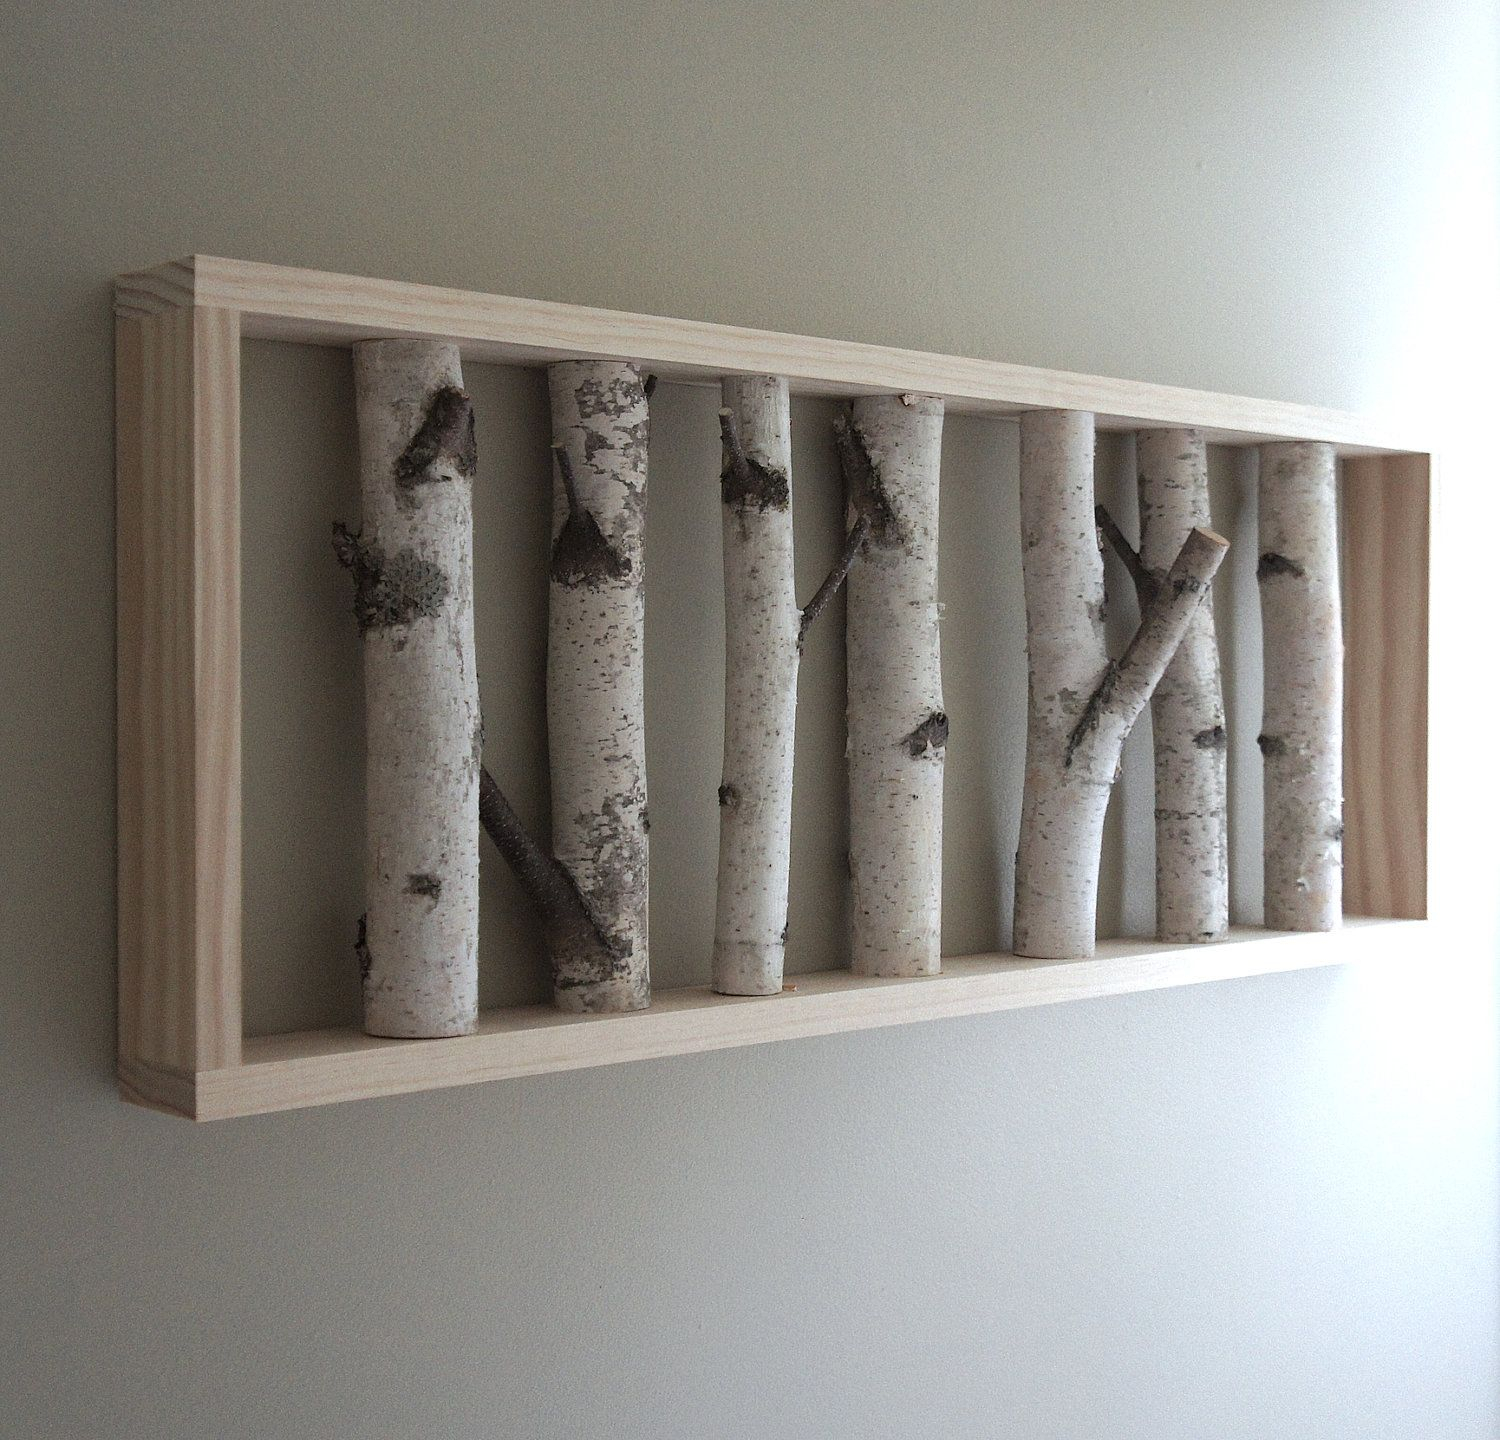 White Birch Forest Wall Art – 36 X 12, Birch Branch Decor Pertaining To Contemporary Forest Metal Wall Decor (View 23 of 30)